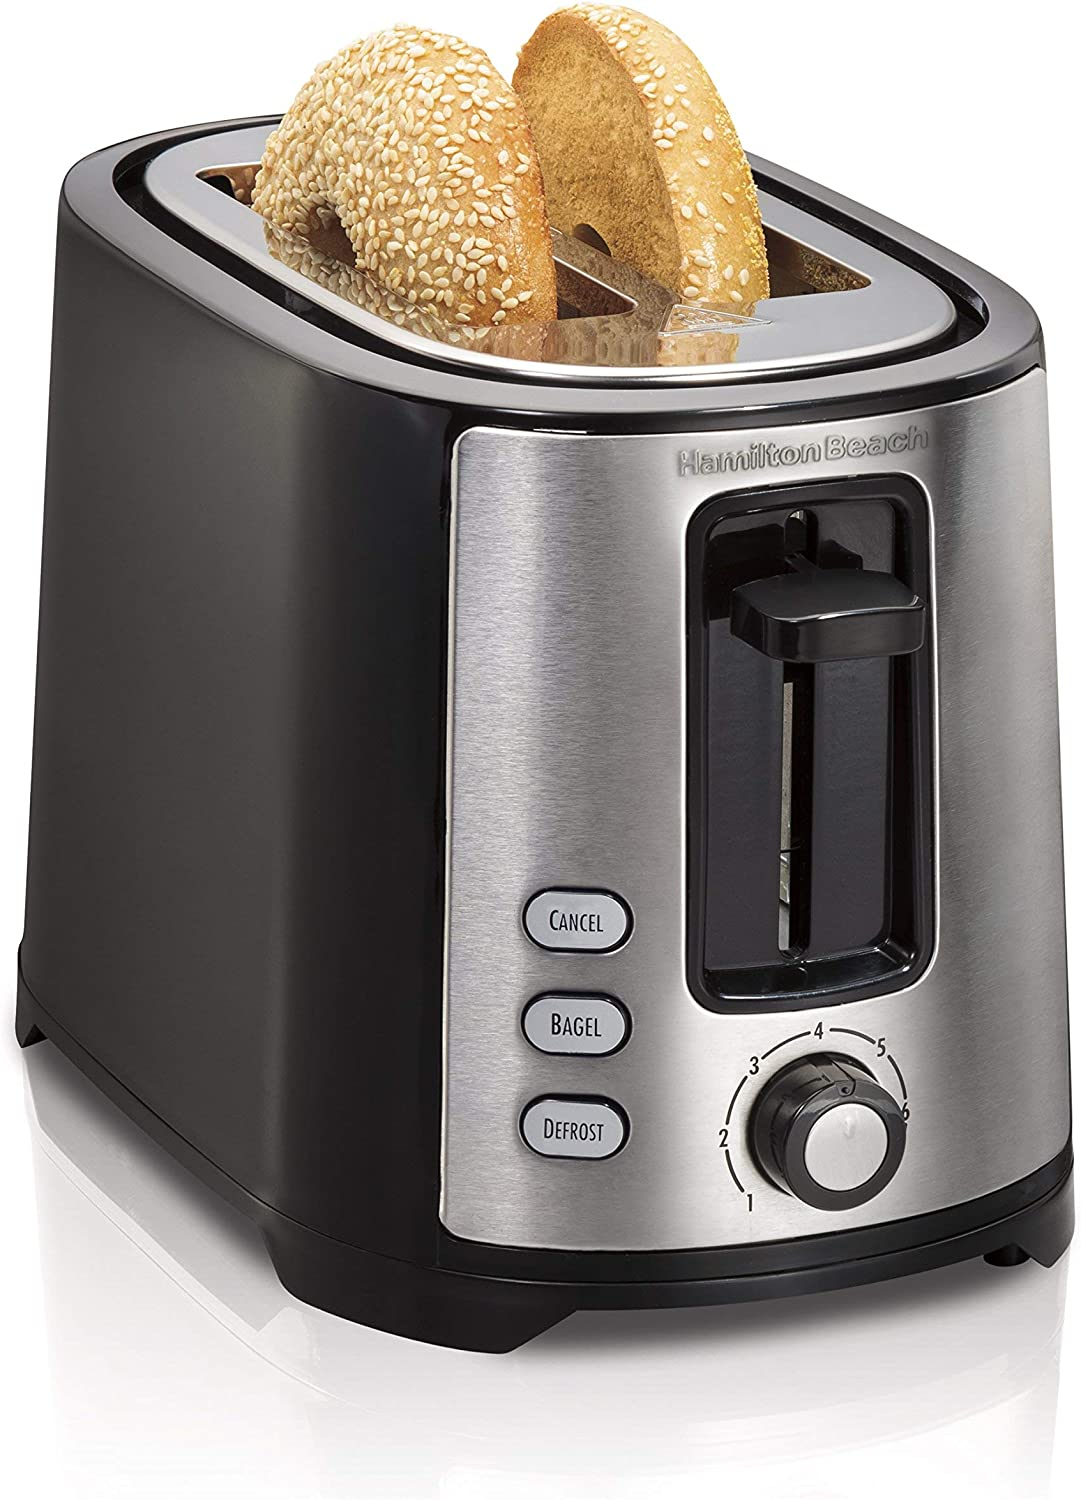 Hamilton Beach Beach Extra-Wide 2 Slice Slot Toaster, Black (22633) (Renewed)